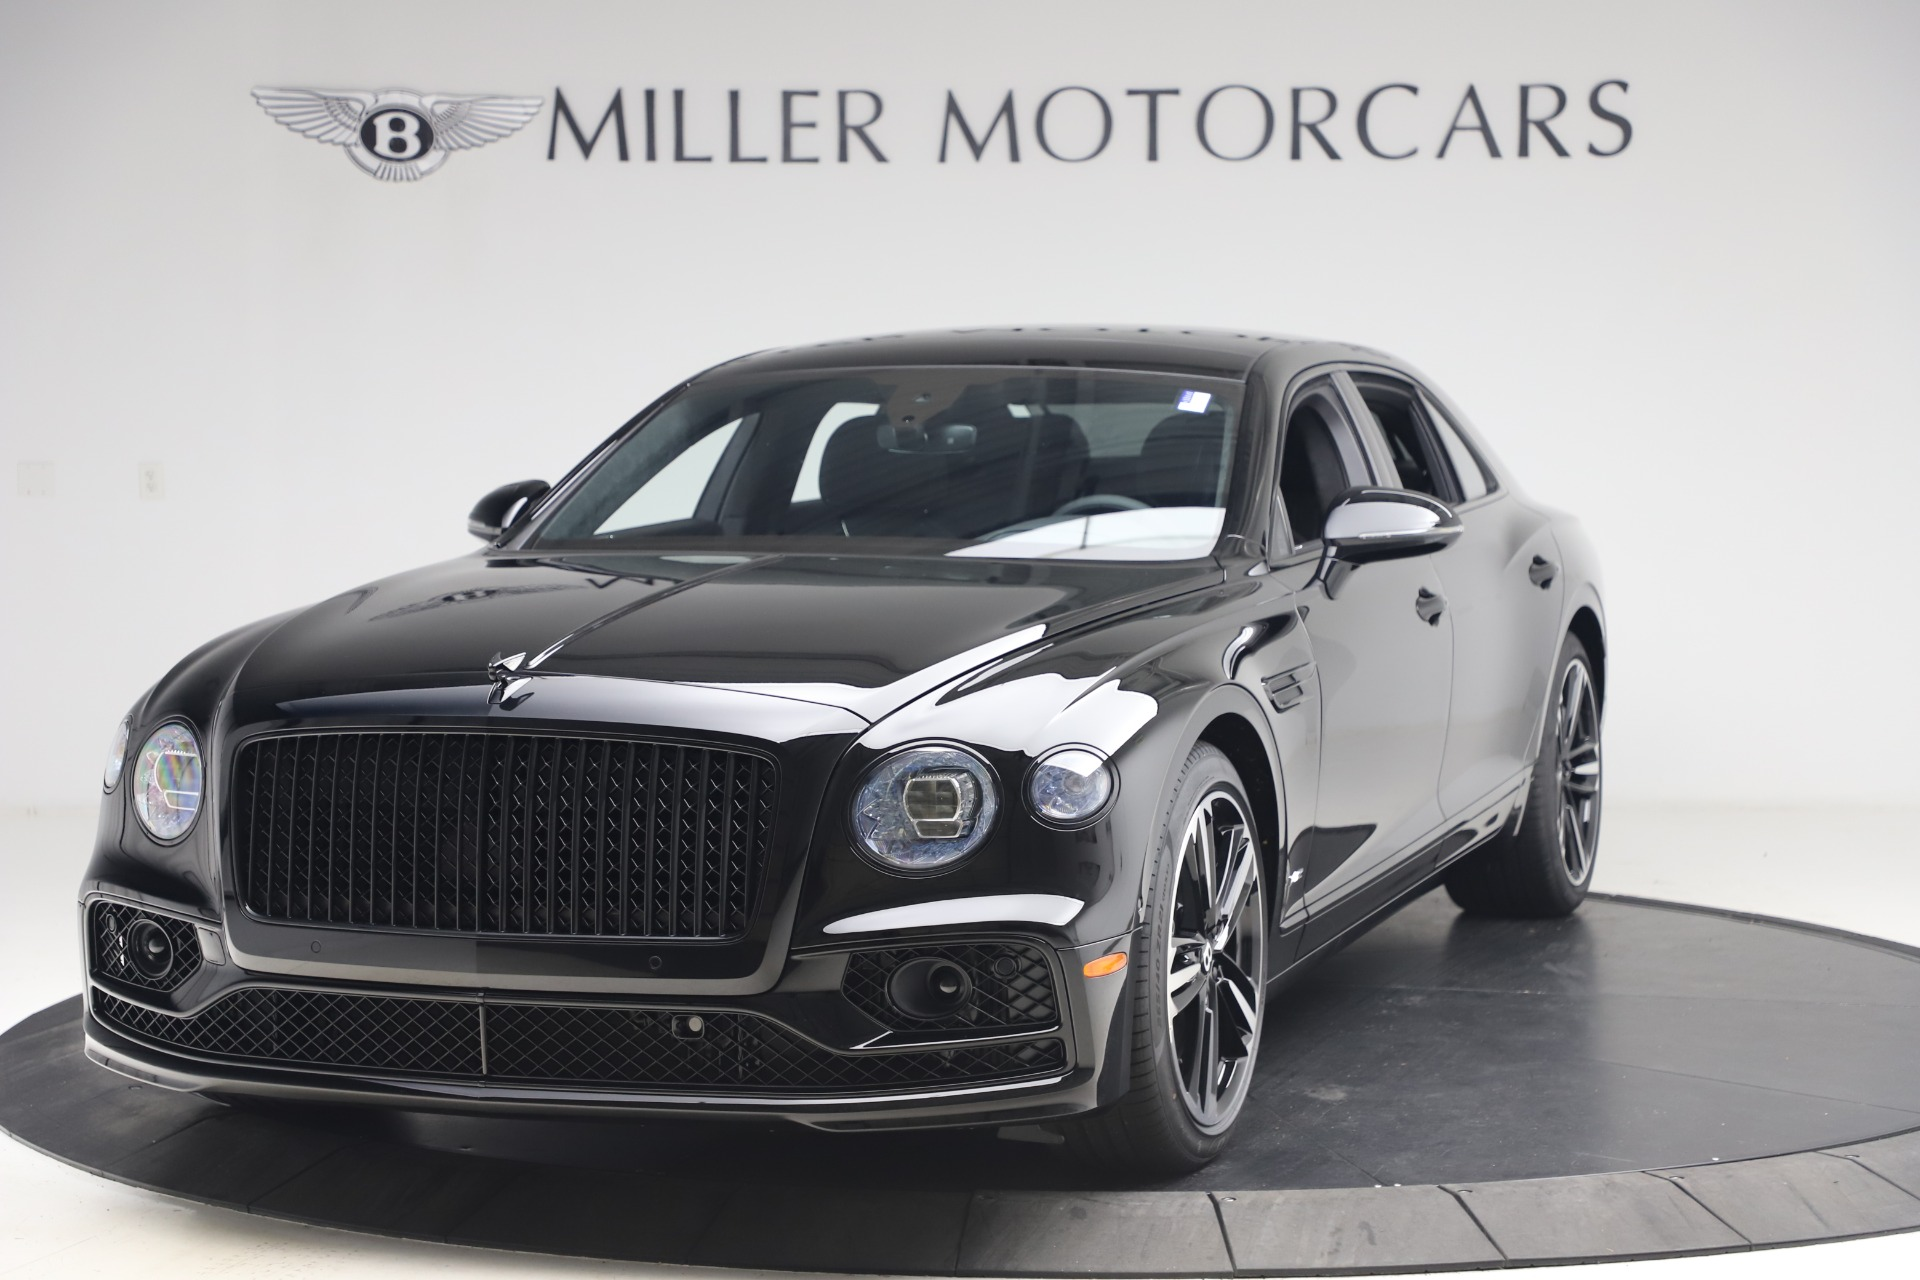 New 2020 Bentley Flying Spur W12 for sale $261,615 at McLaren Greenwich in Greenwich CT 06830 1